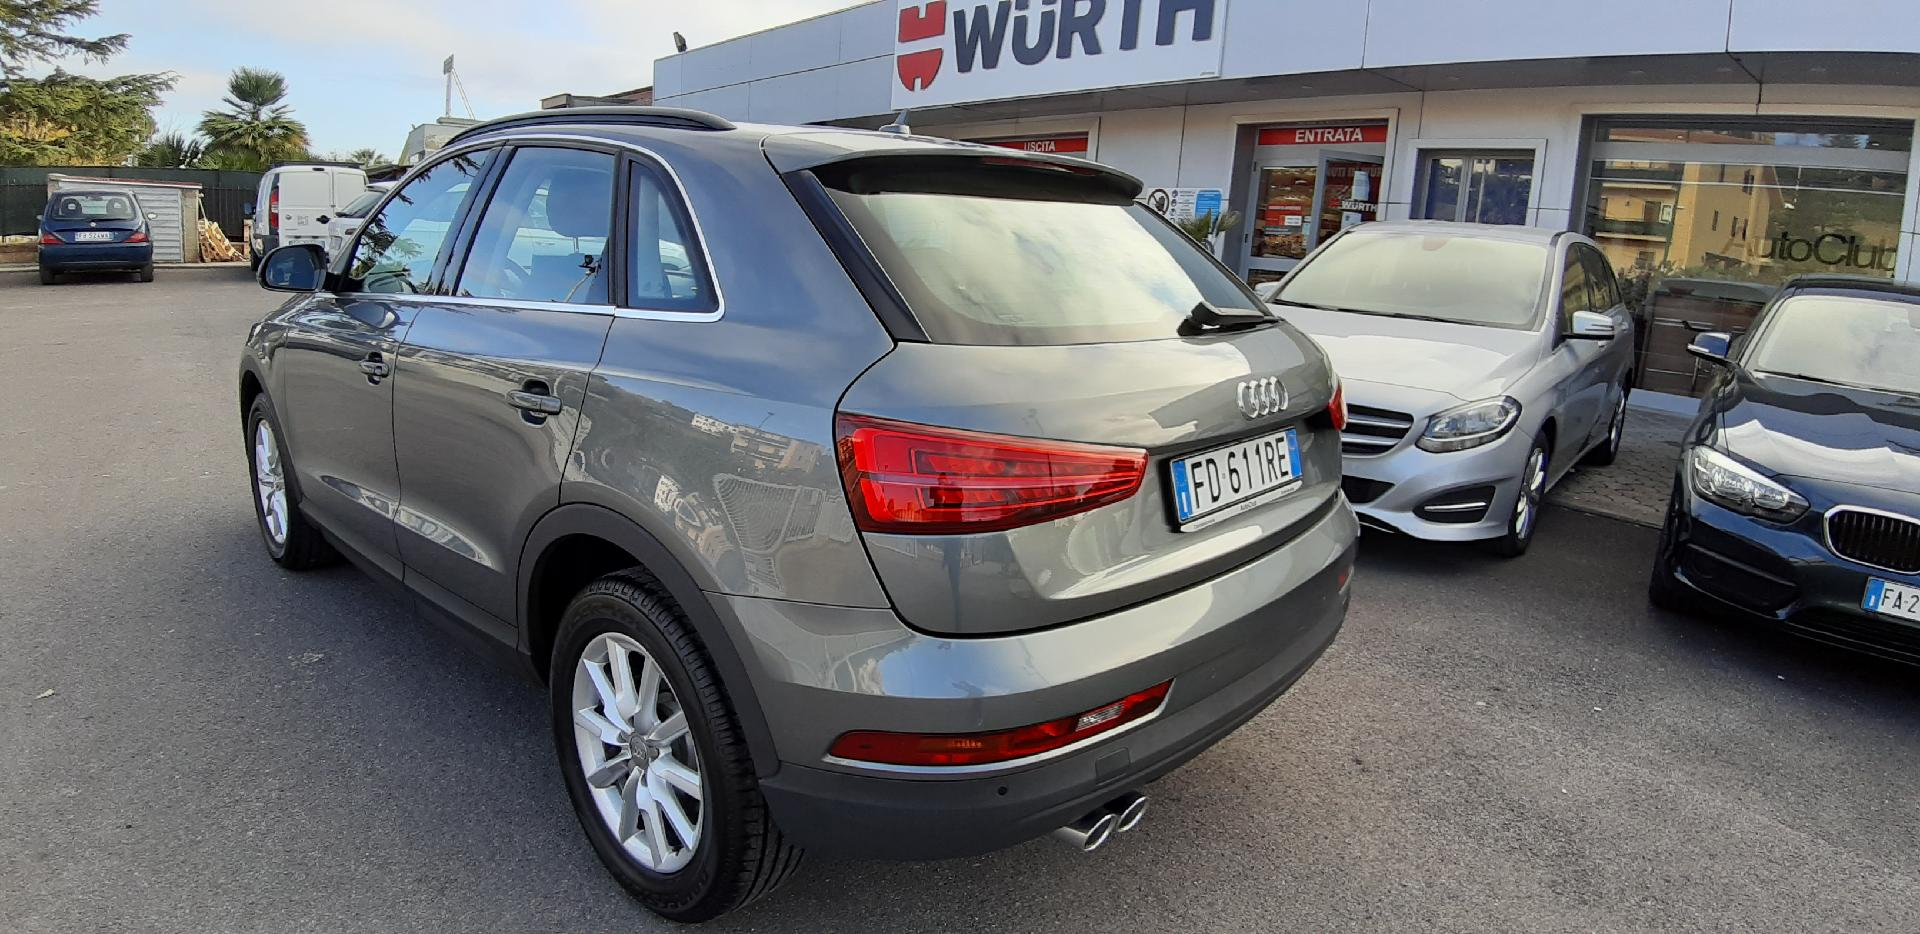 Audi Q3 2.0 TDI 150CV BUSINESS Diesel